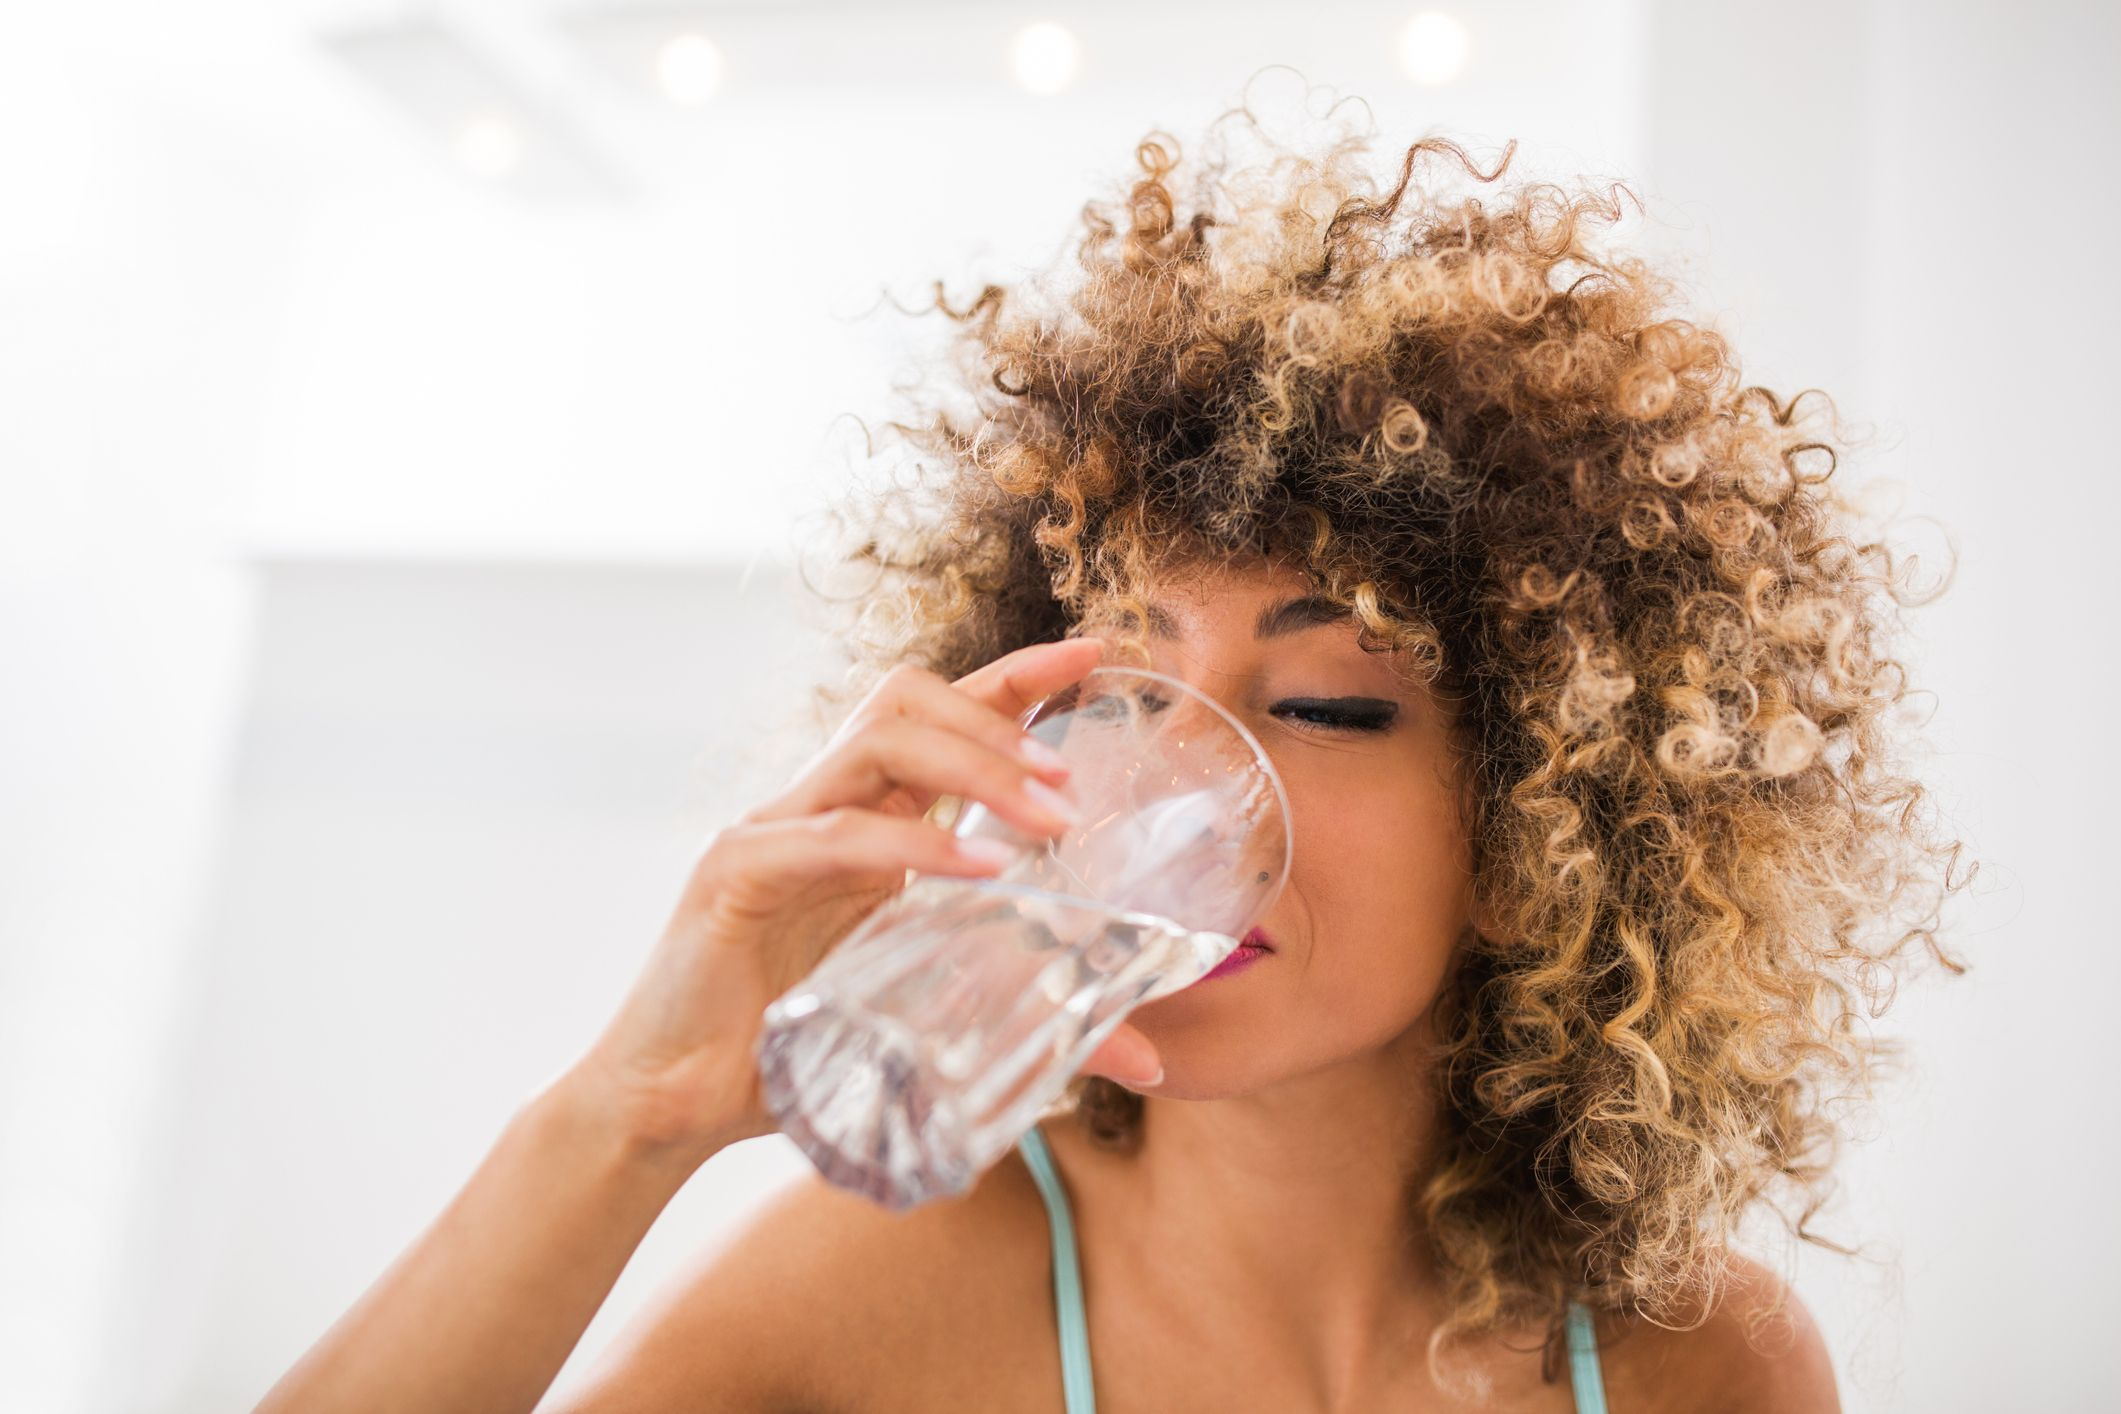 rapid weight loss extreme thirst